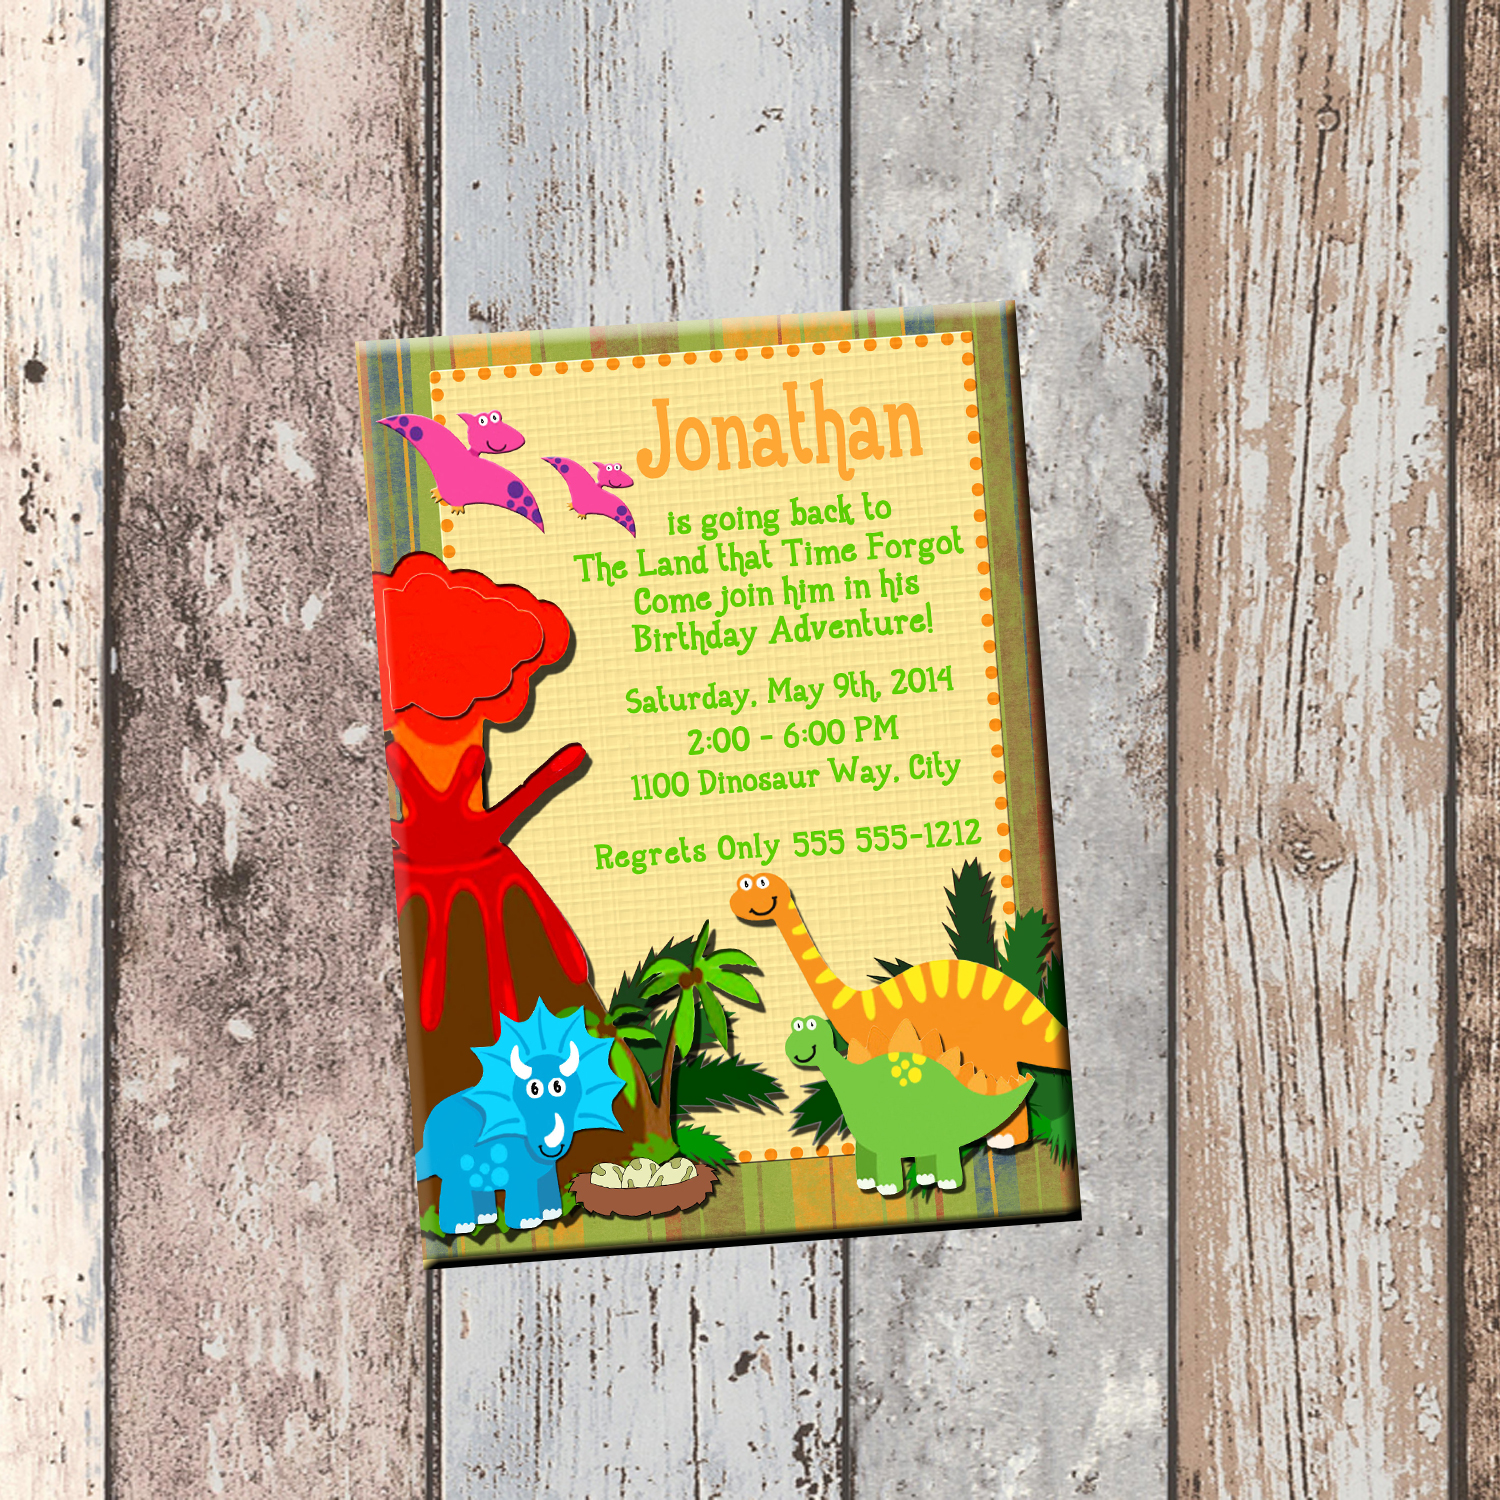 Dino Babies Personalized Birthday Invitation 1 Sided Card Party Dinosaur